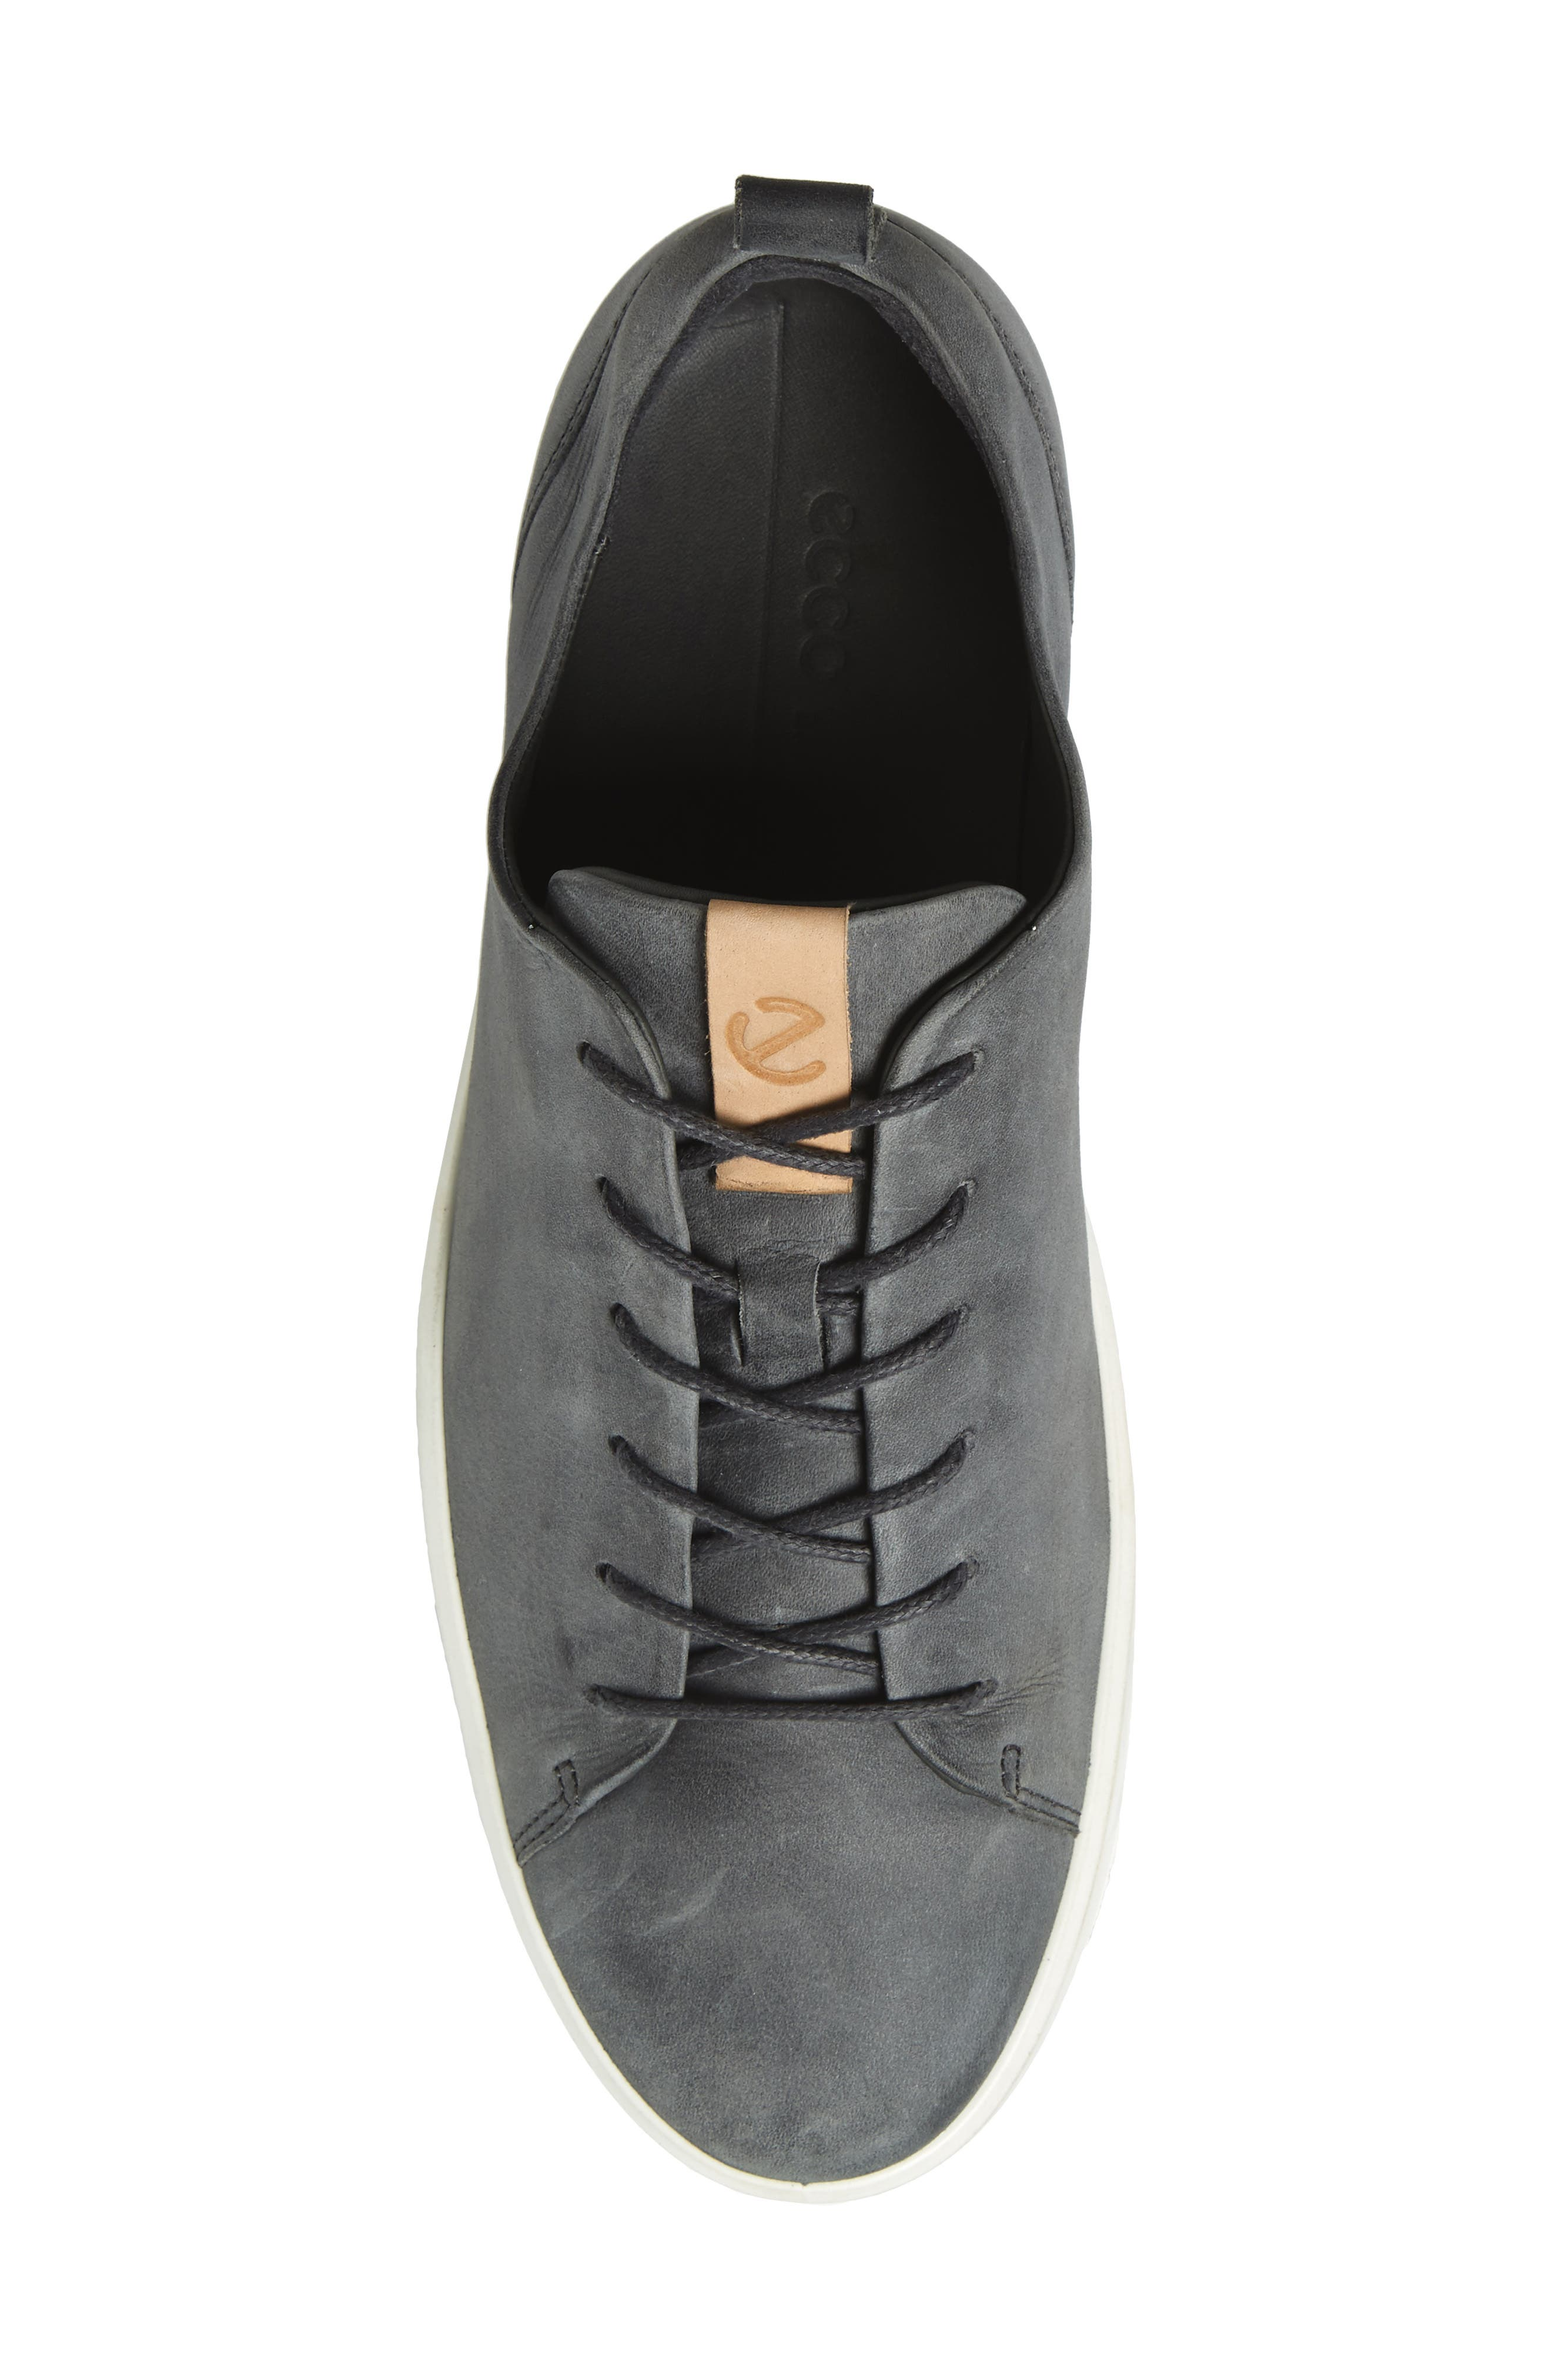 Soft 8 Sneaker,                             Alternate thumbnail 5, color,                             DARK SHADOW LEATHER